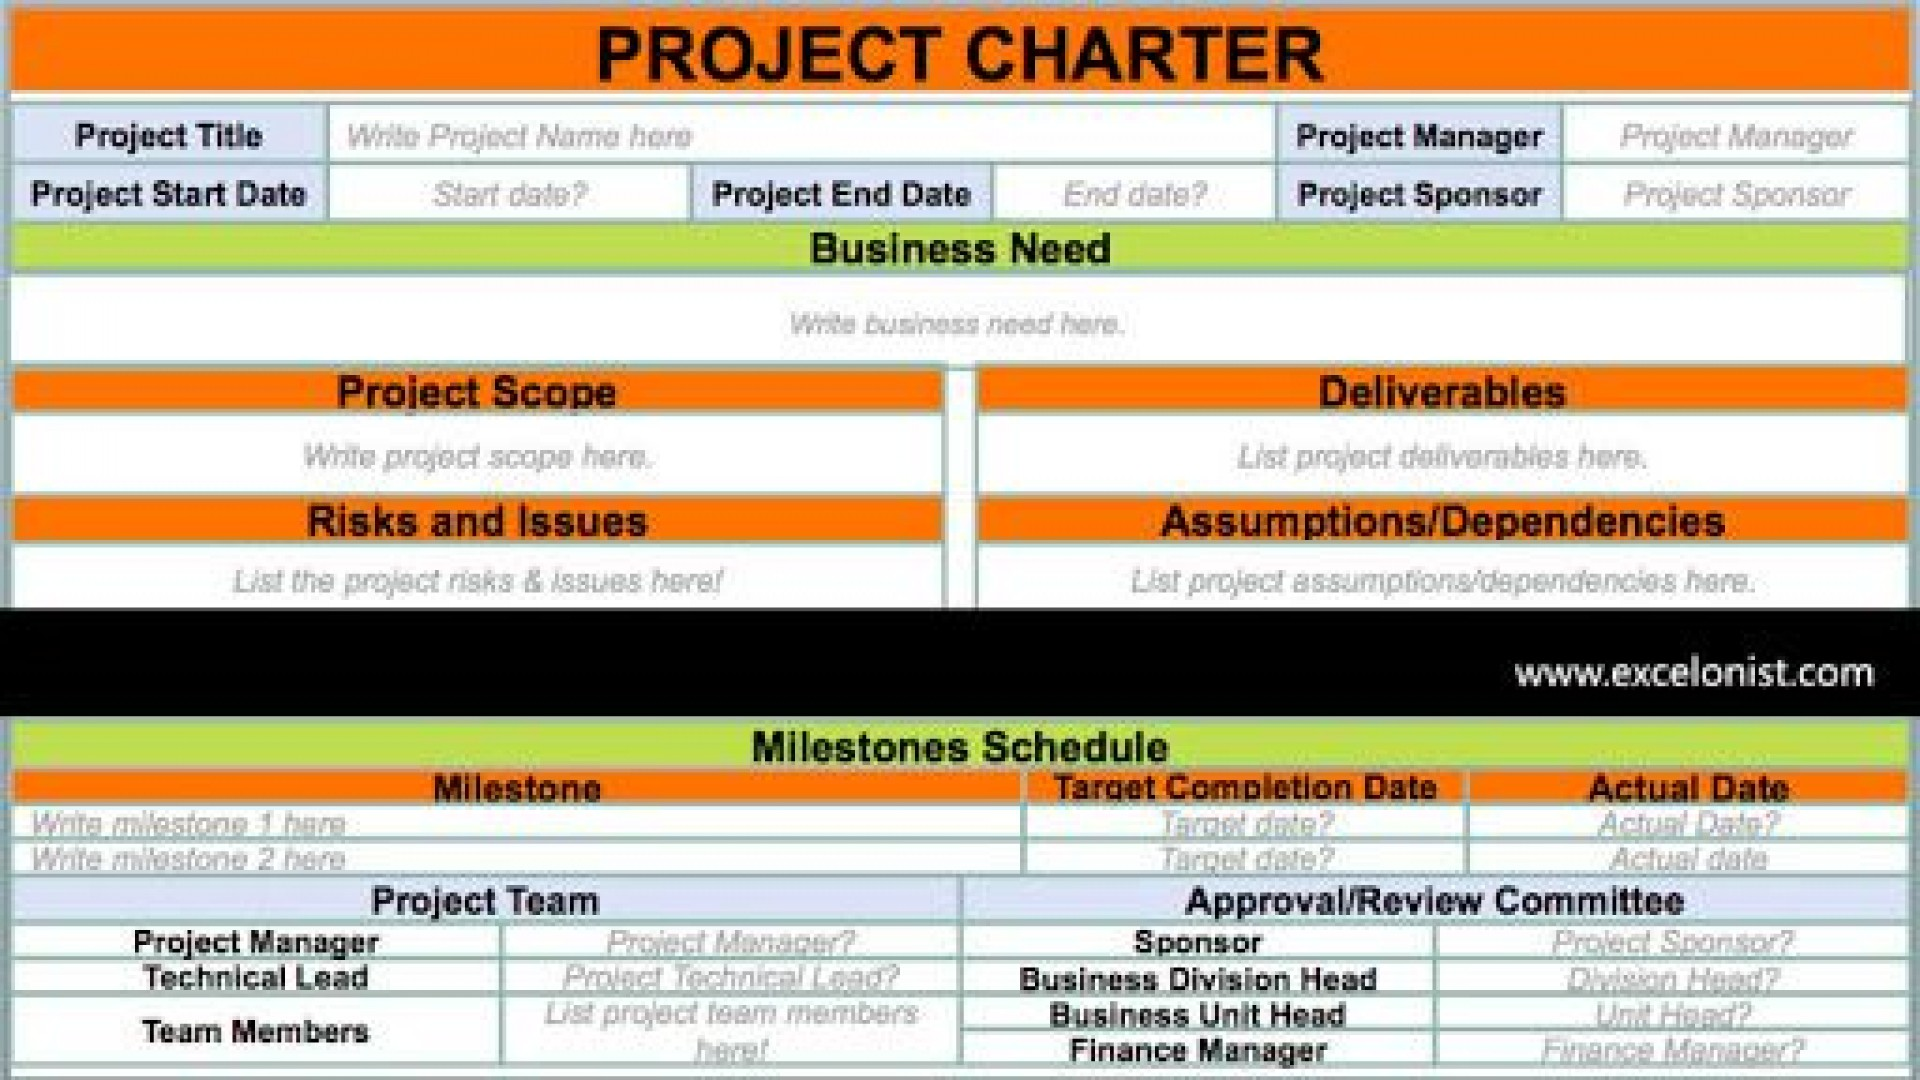 009 Archaicawful Project Charter Template Excel Picture  Lean Pmbok Nederland1920